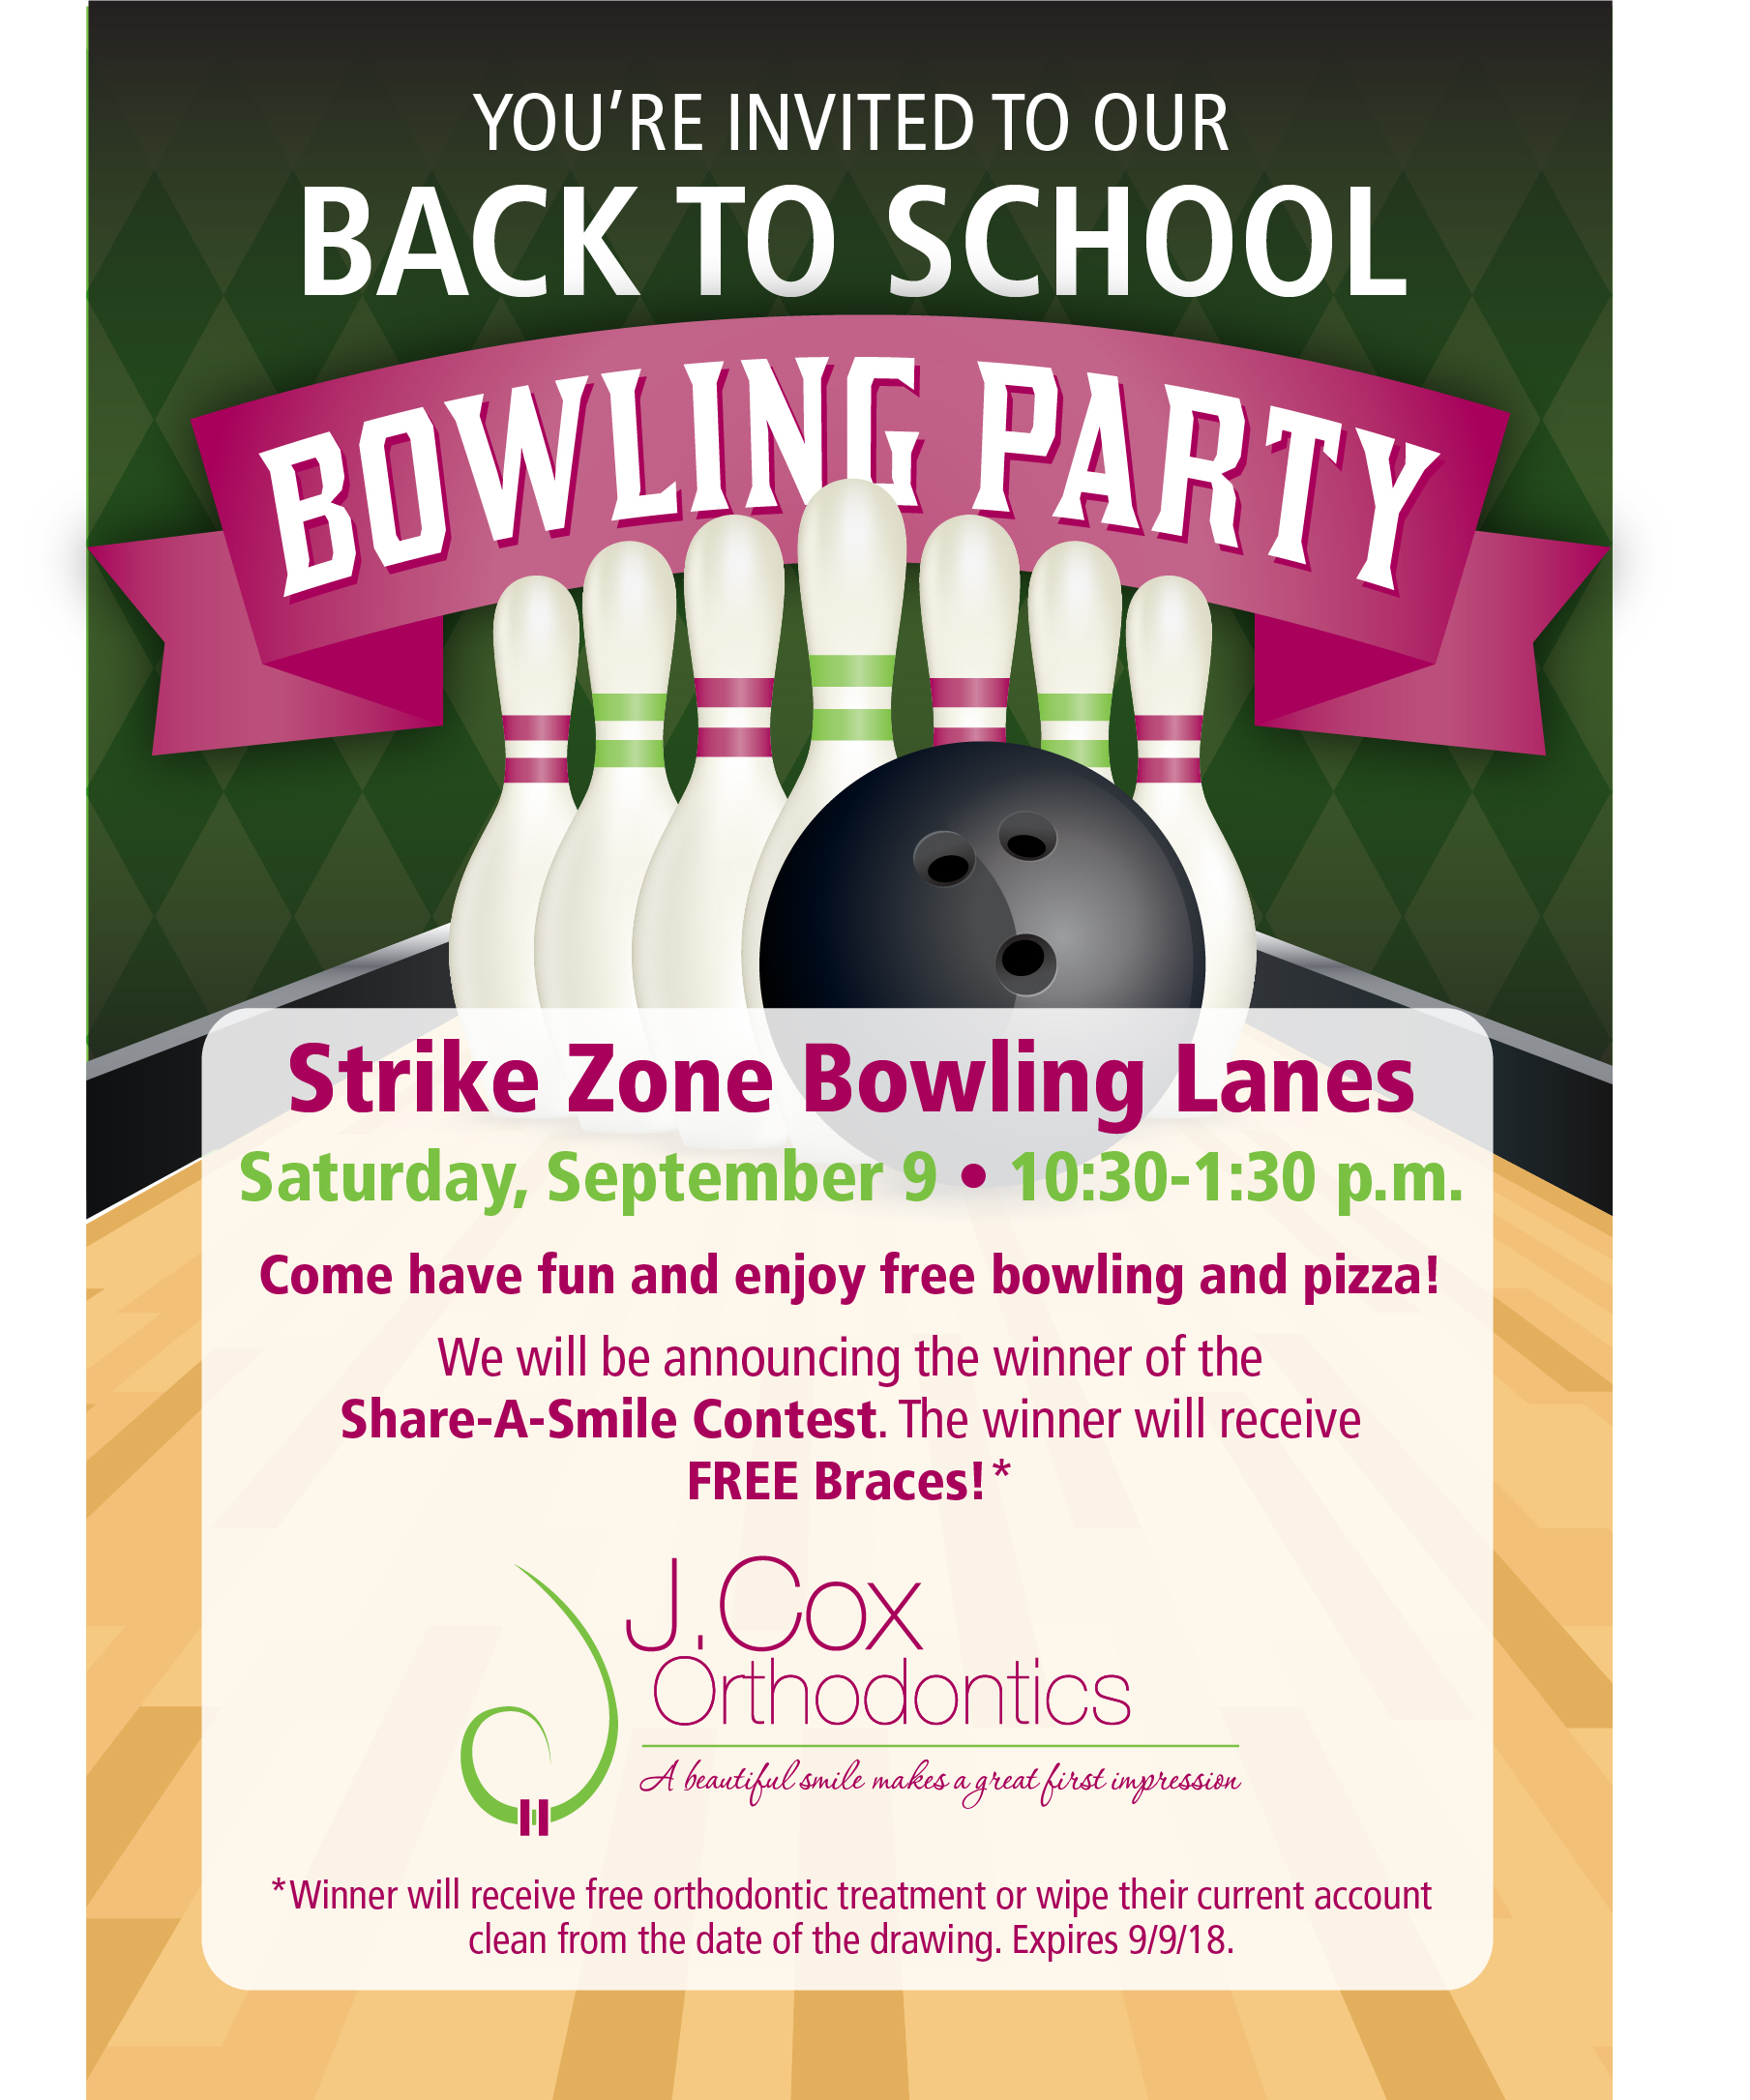 BACK TO SCHOOL BOWLING PARTY - J  Cox Orthodontics » J  Cox